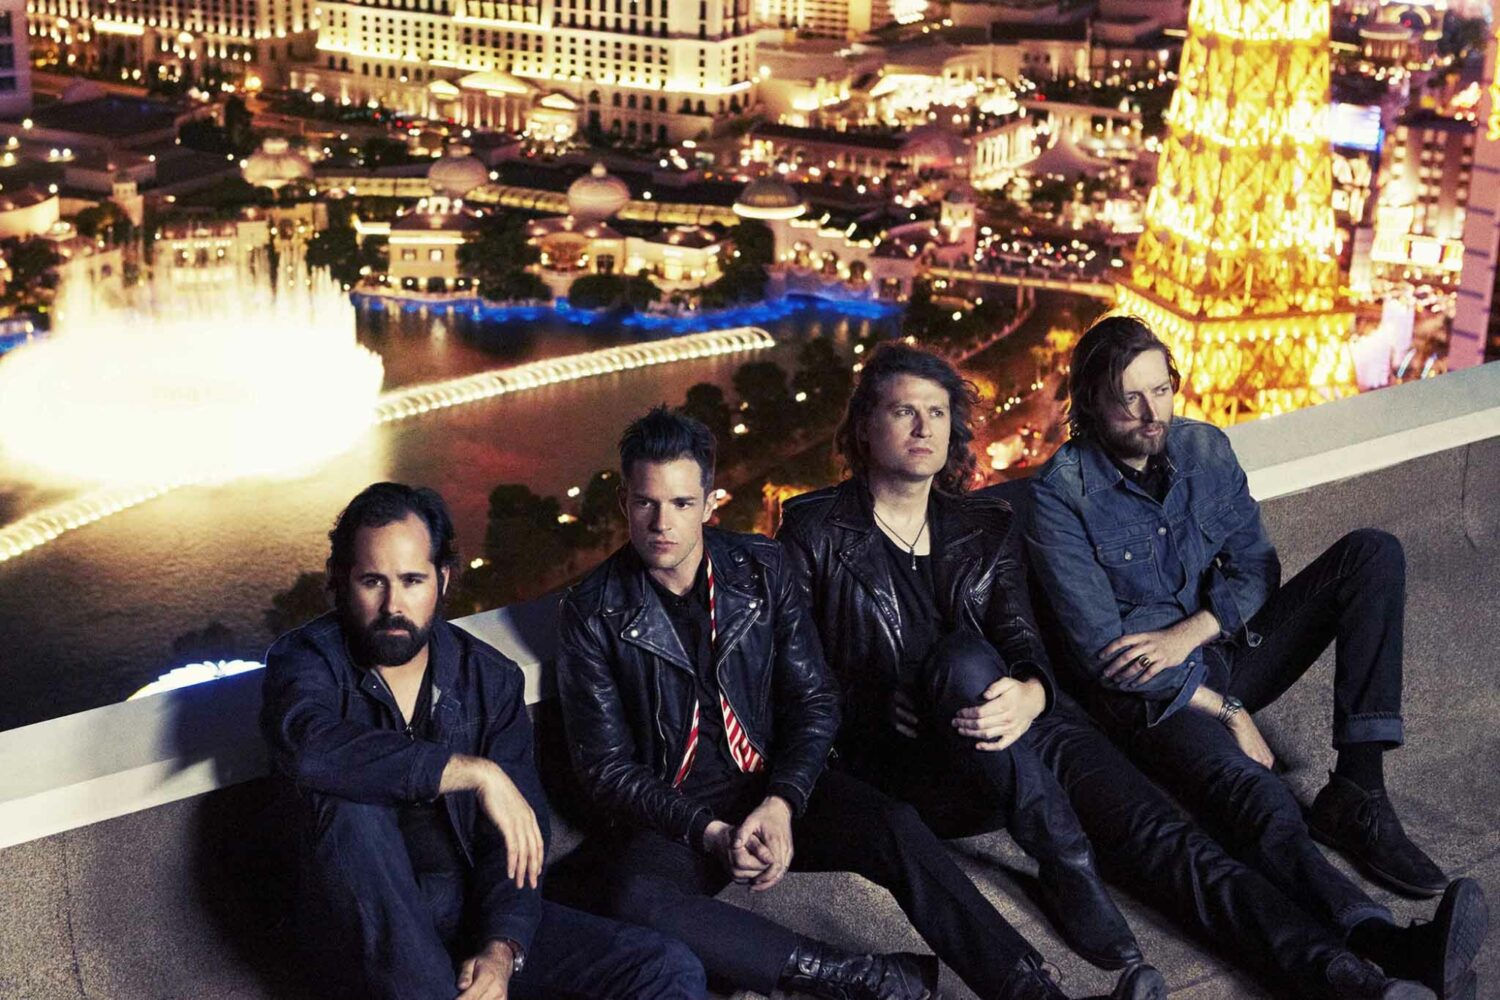 The Killers: what the hell are they up to?